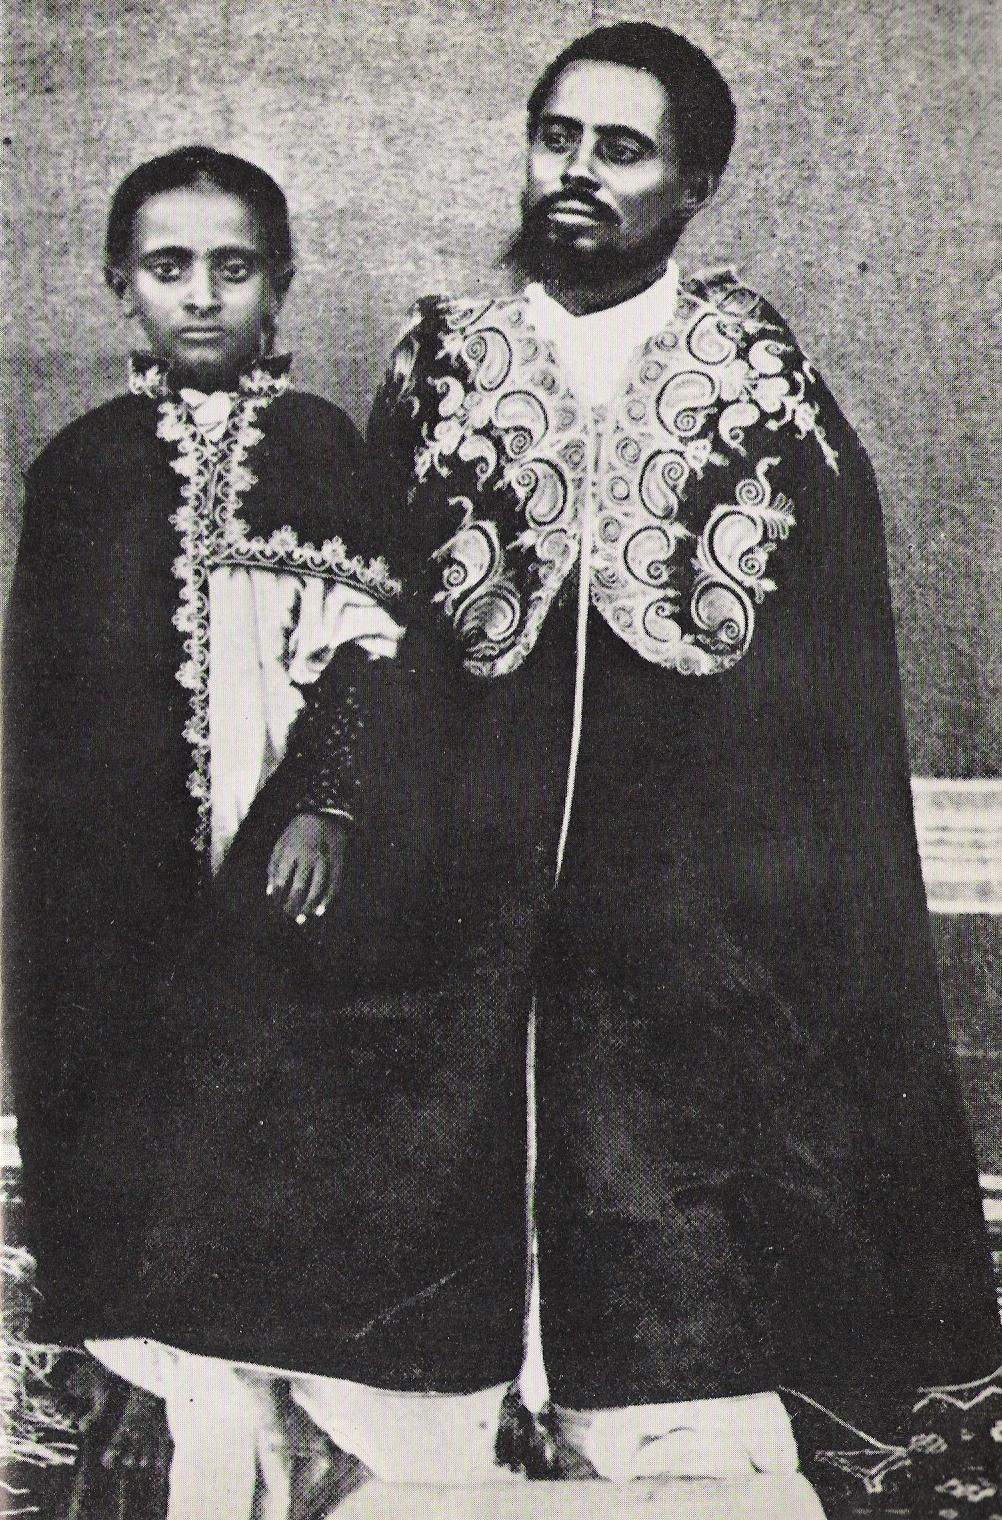 a biography of haile selassie A critical look at the rule of emperor haile selassie of ethiopia, regarded by many as progressive, and by some as god incarnate.